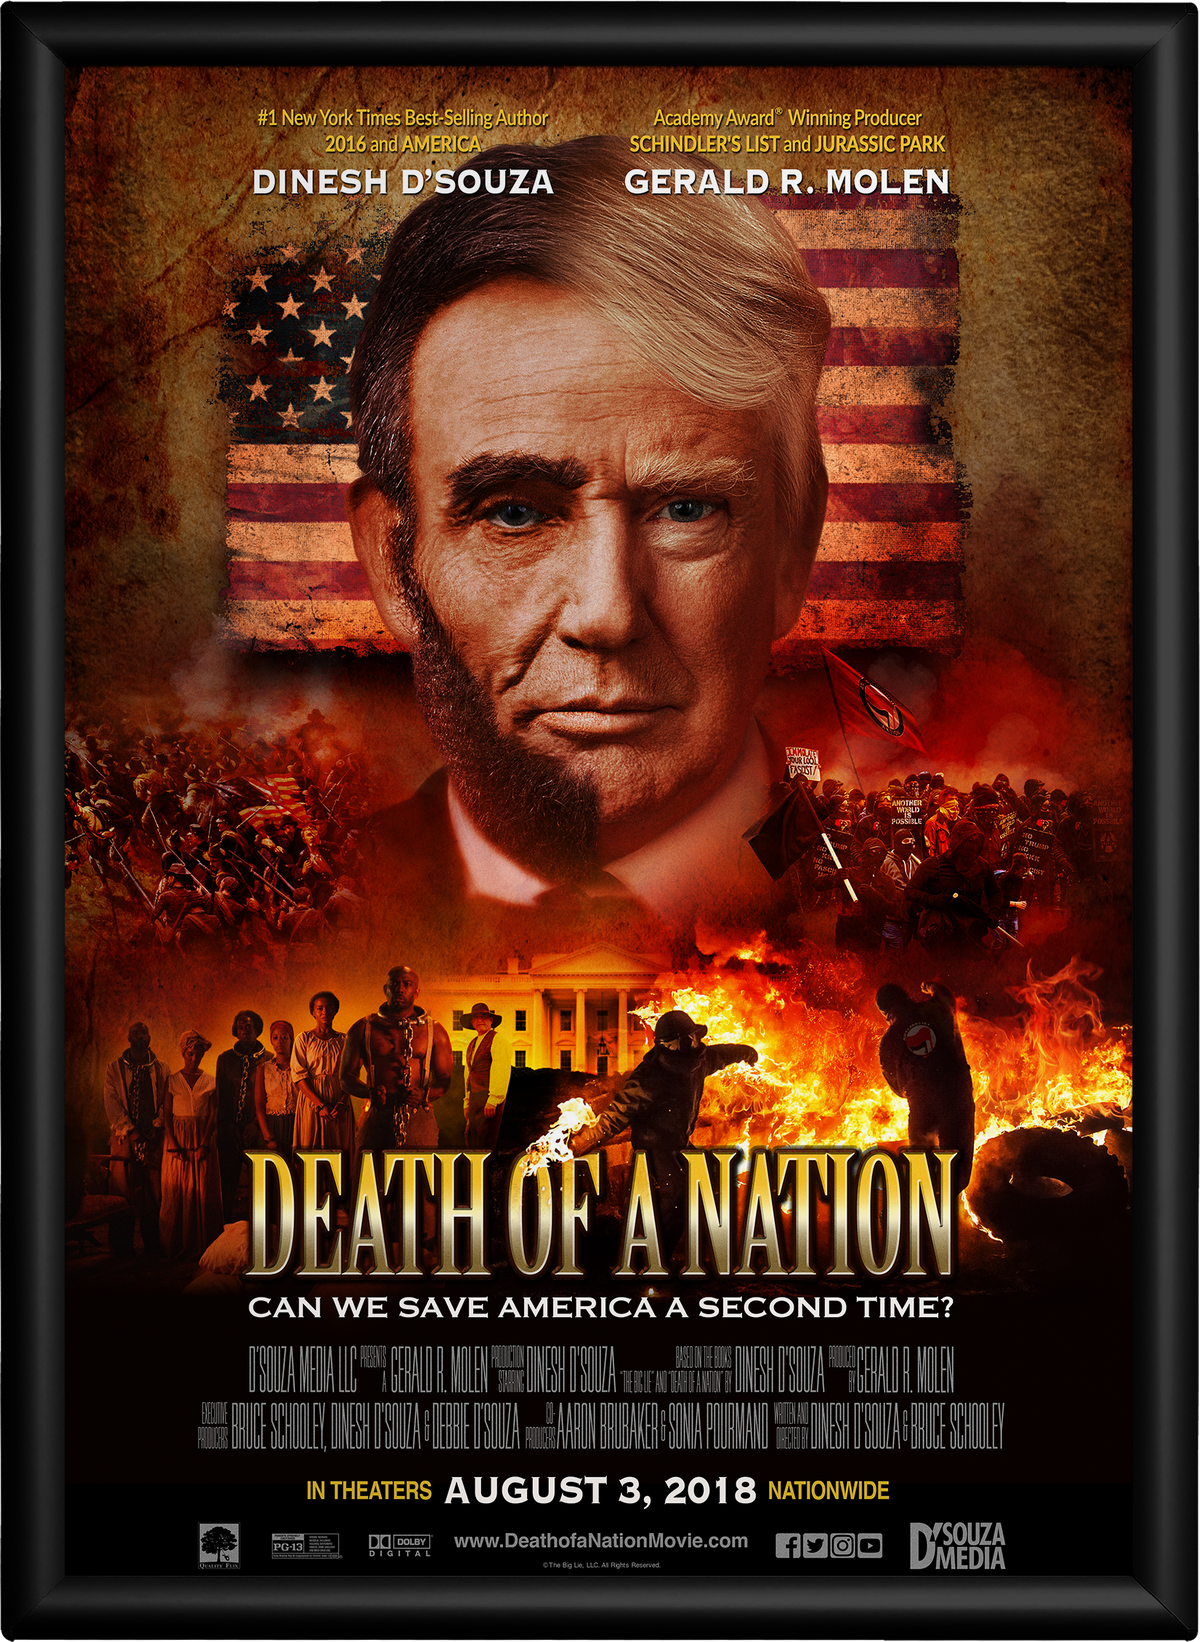 The poster for Dinesh D'Souza's newest film, which comes out on August 3.